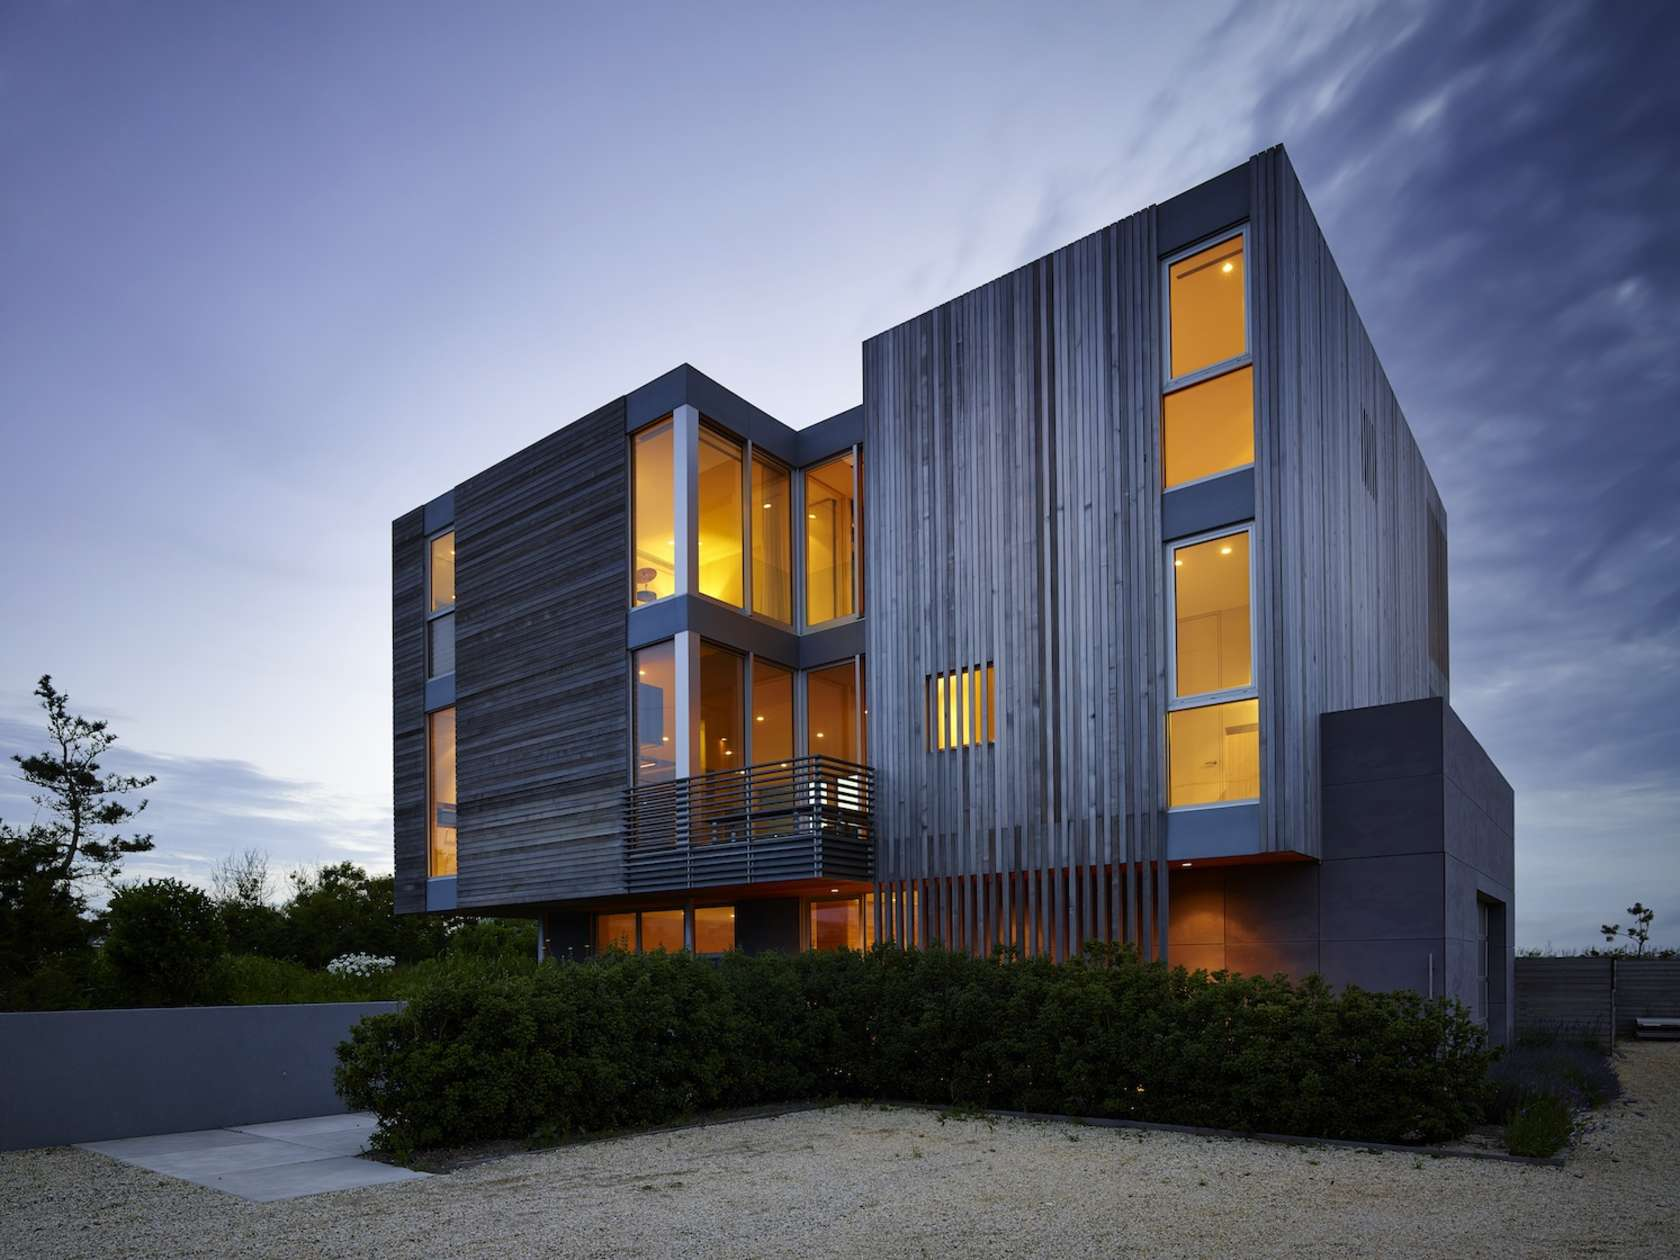 Top 10 Incredible Modern Houses In USA Modern Houses In The United States  Top 10 Incredible